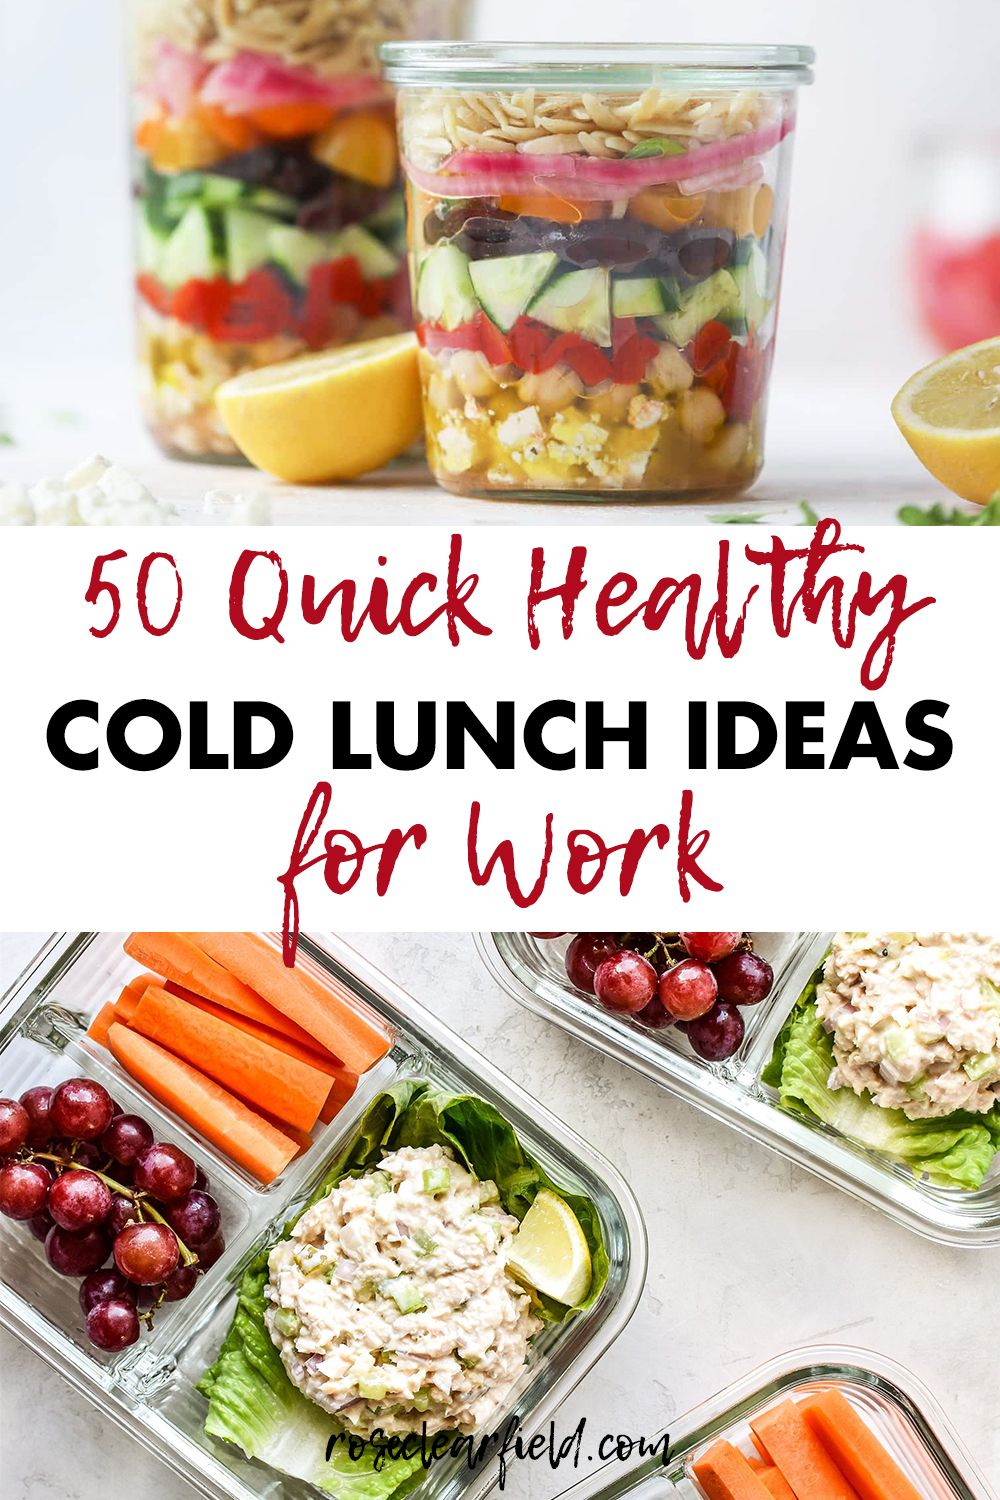 50 Quick Healthy Cold Lunch Ideas for Work in 2020 Cold